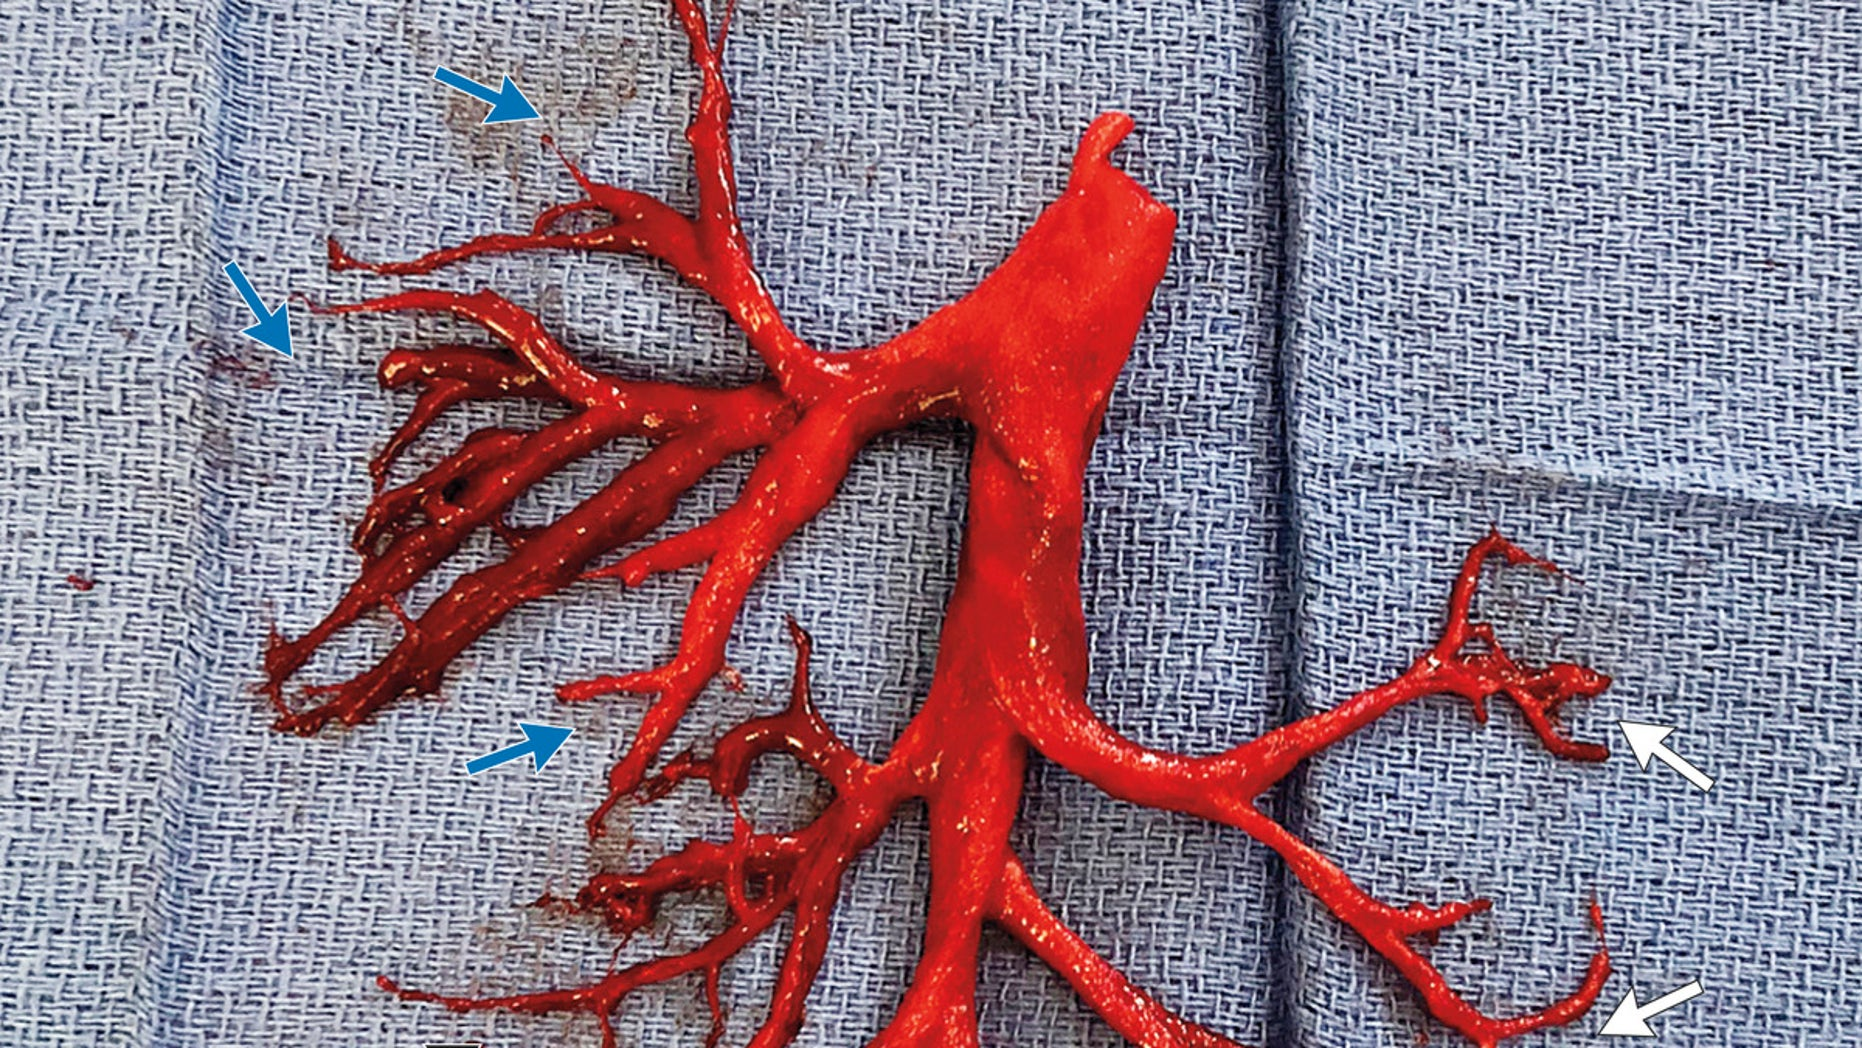 US Man Coughs Up Blood Clot 'Cast' of His Lung